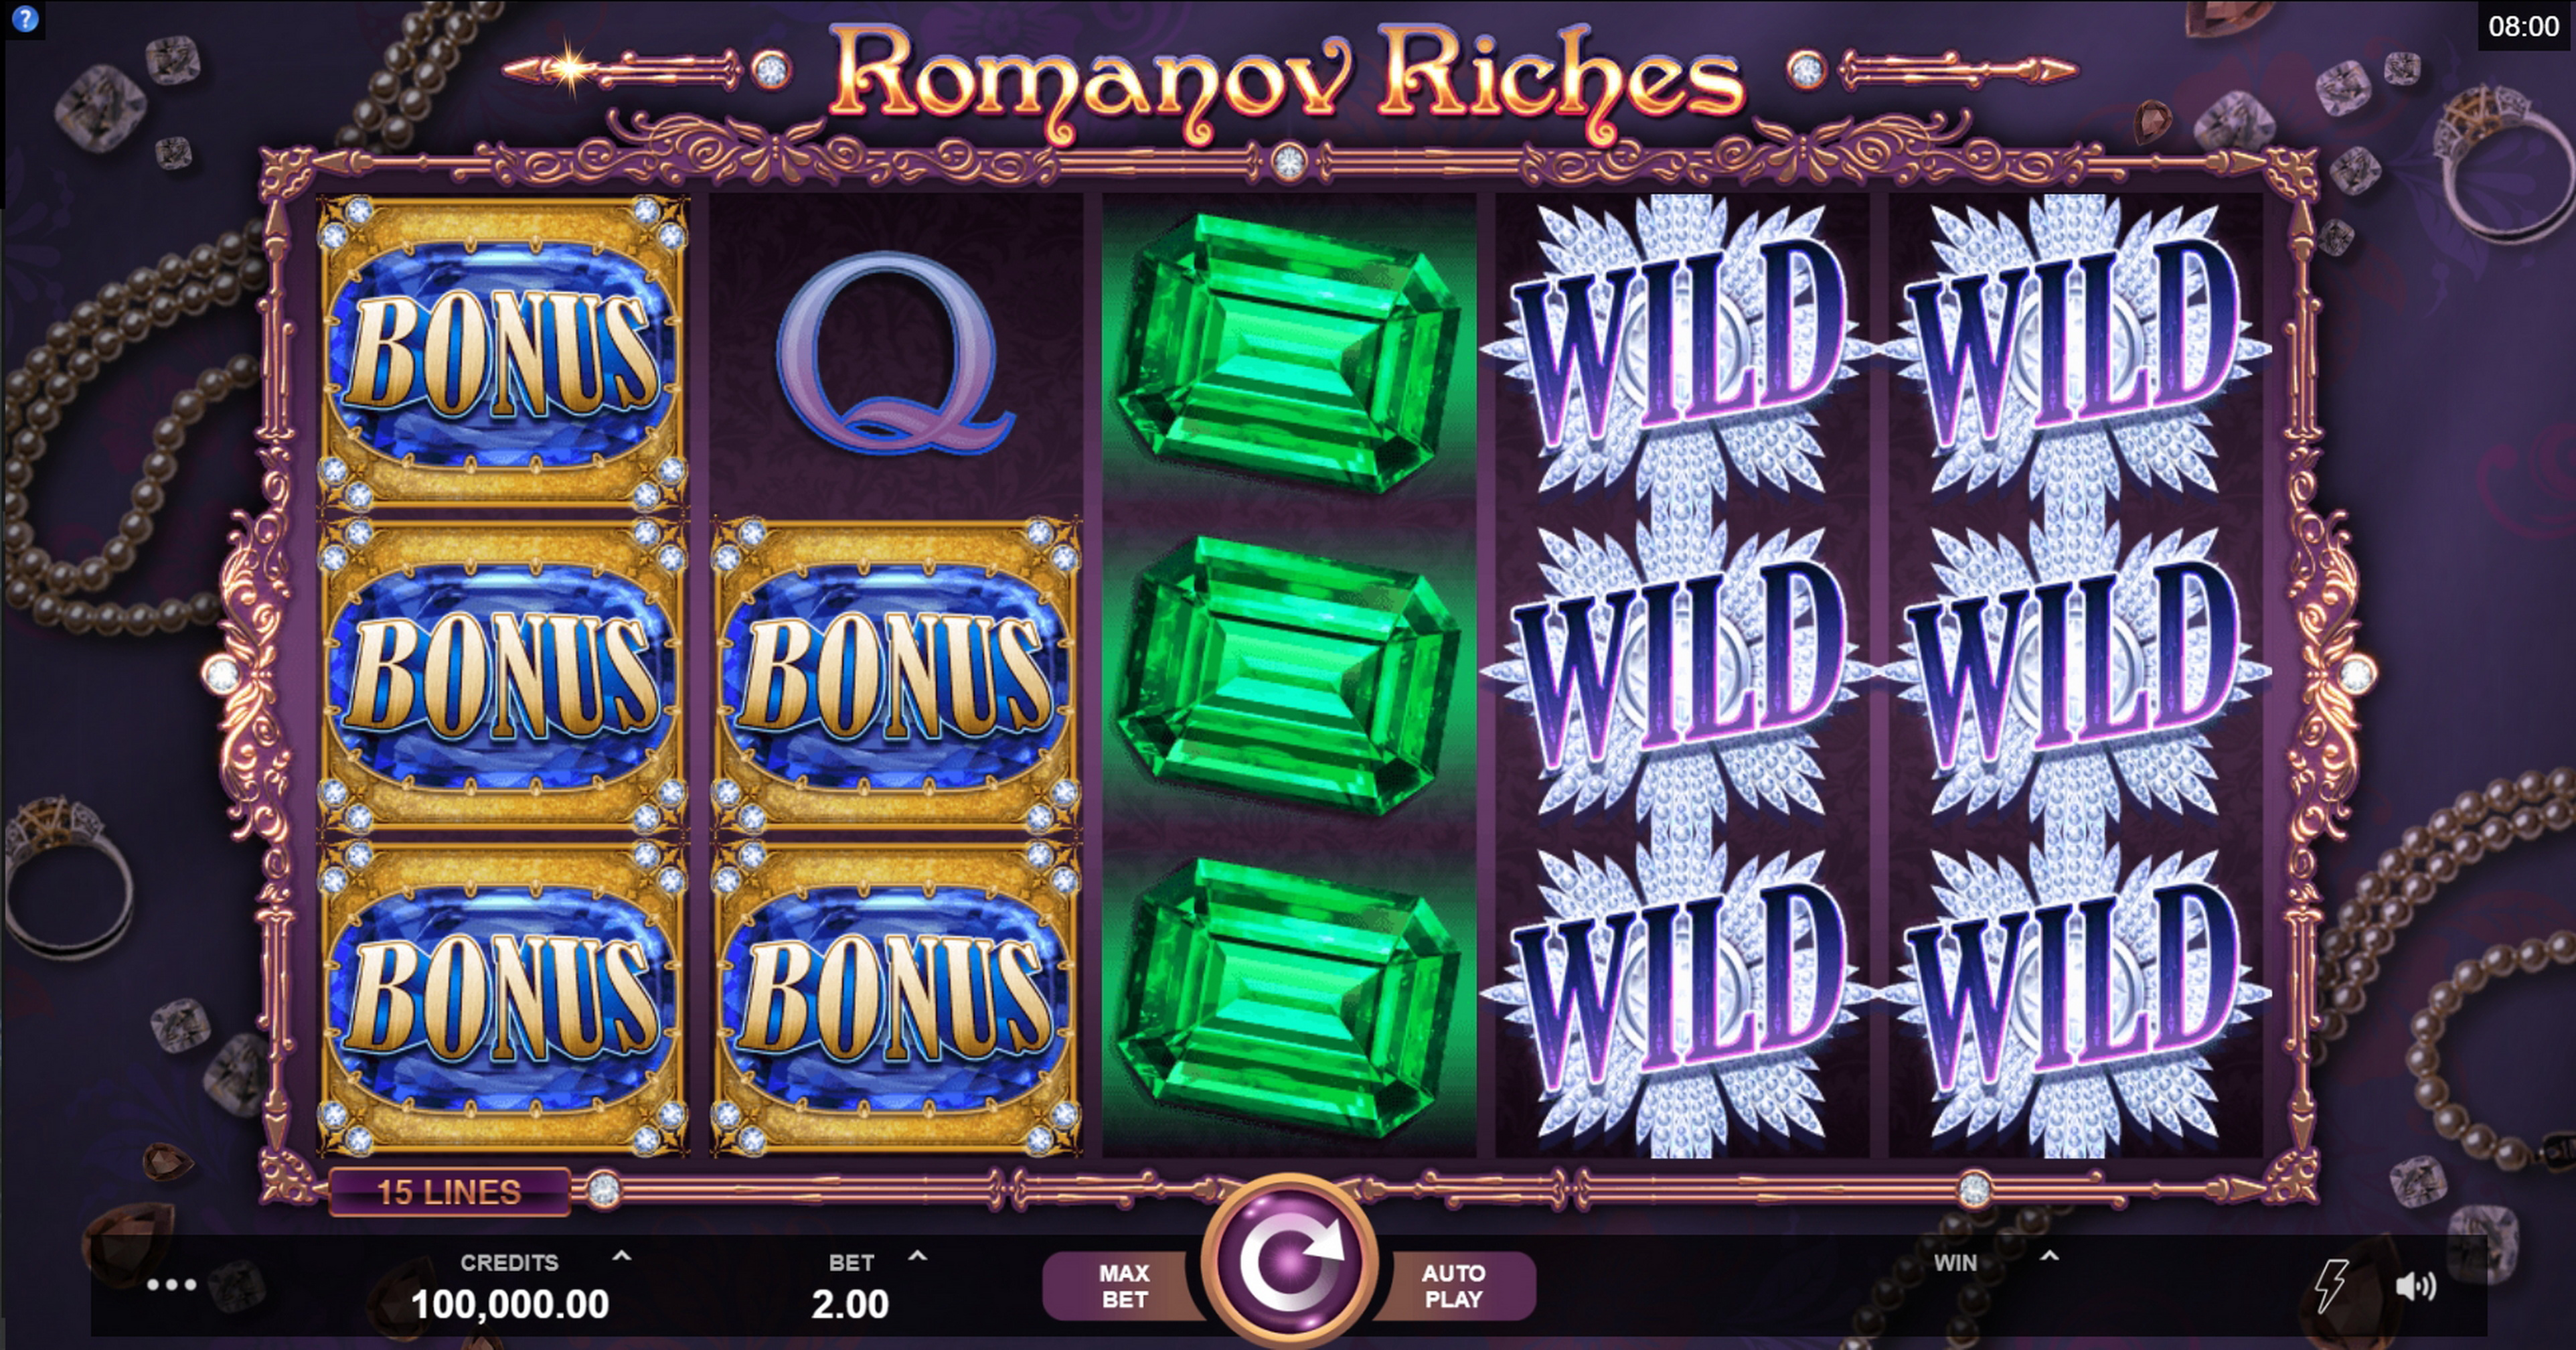 Reels in Romanov Riches Slot Game by Fortune Factory Studios